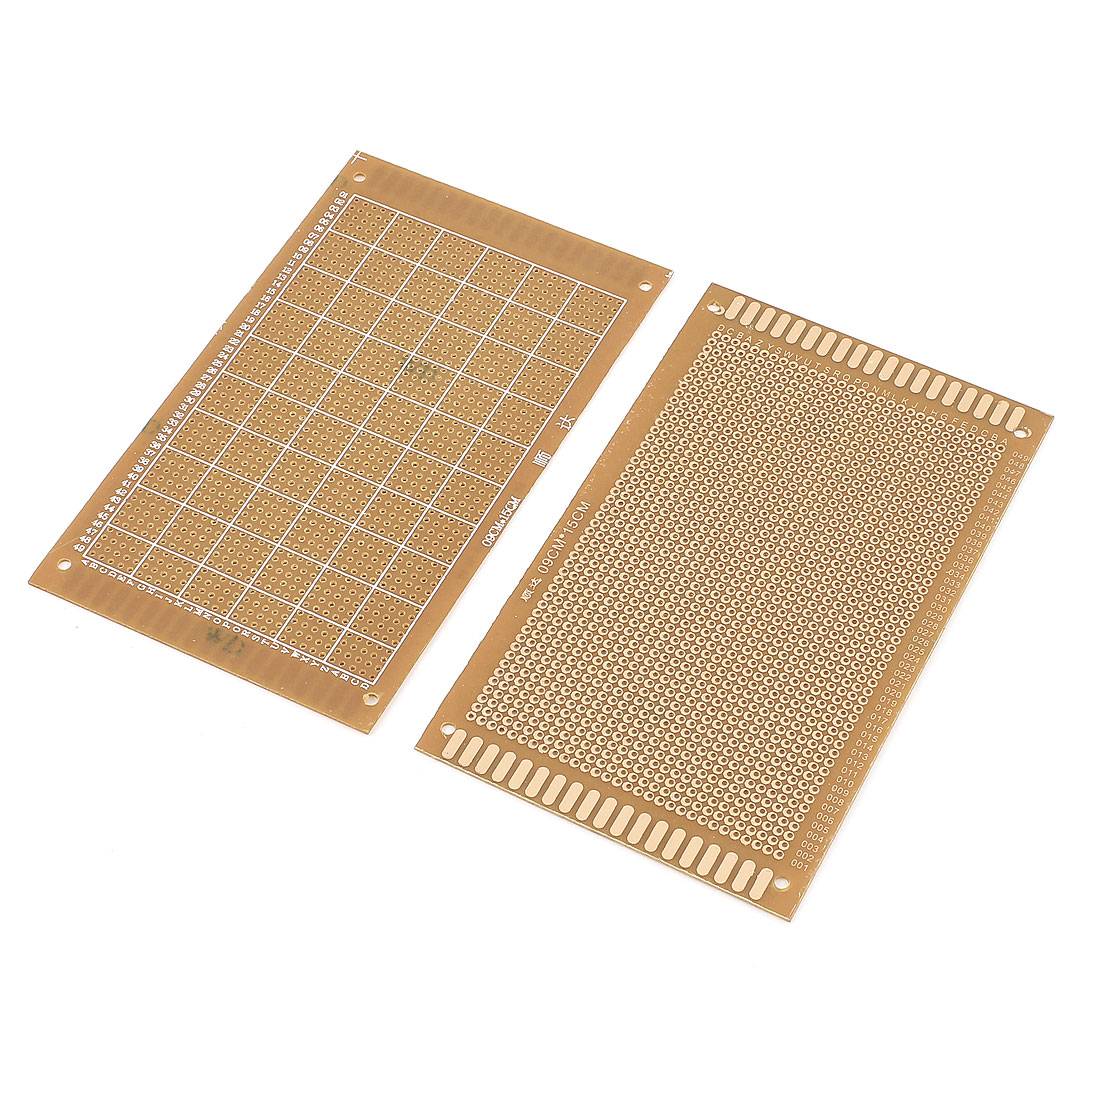 2pcs Single-sided PCB Printed Circuit Board Prototype Breadboard 15cm x 9cm